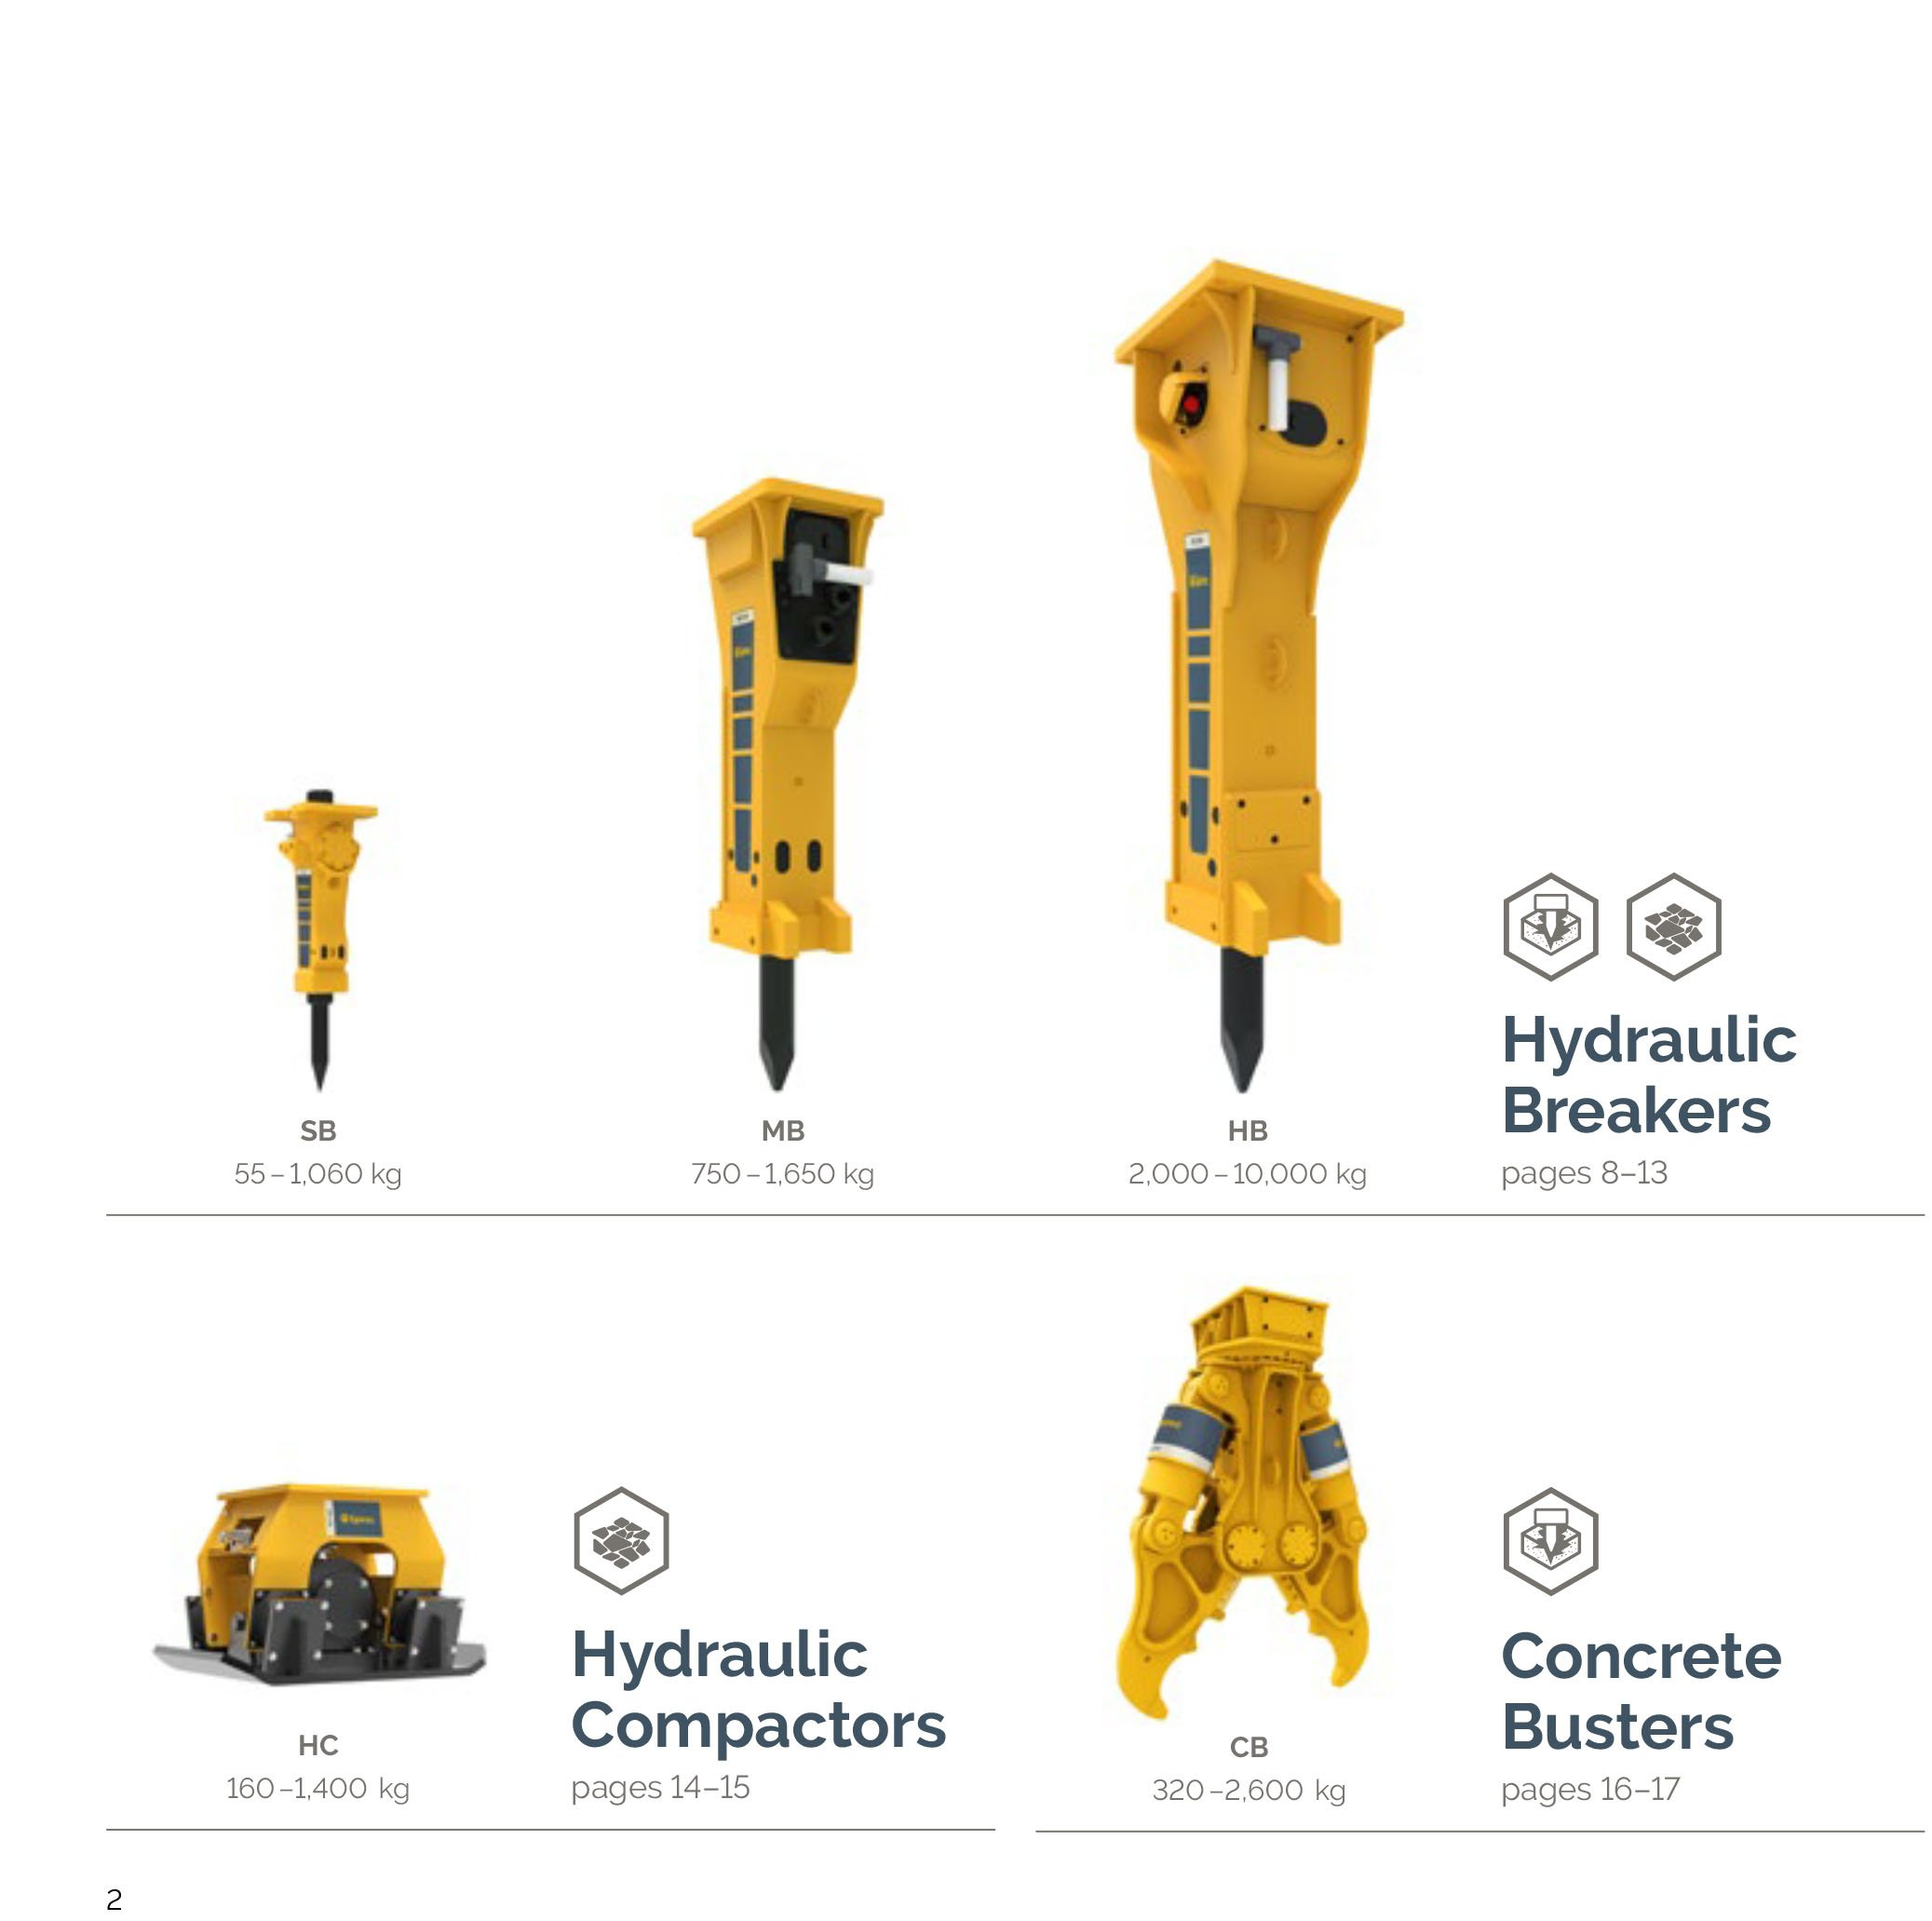 Hydraulic Breakers, Compactors and Concrete Busters